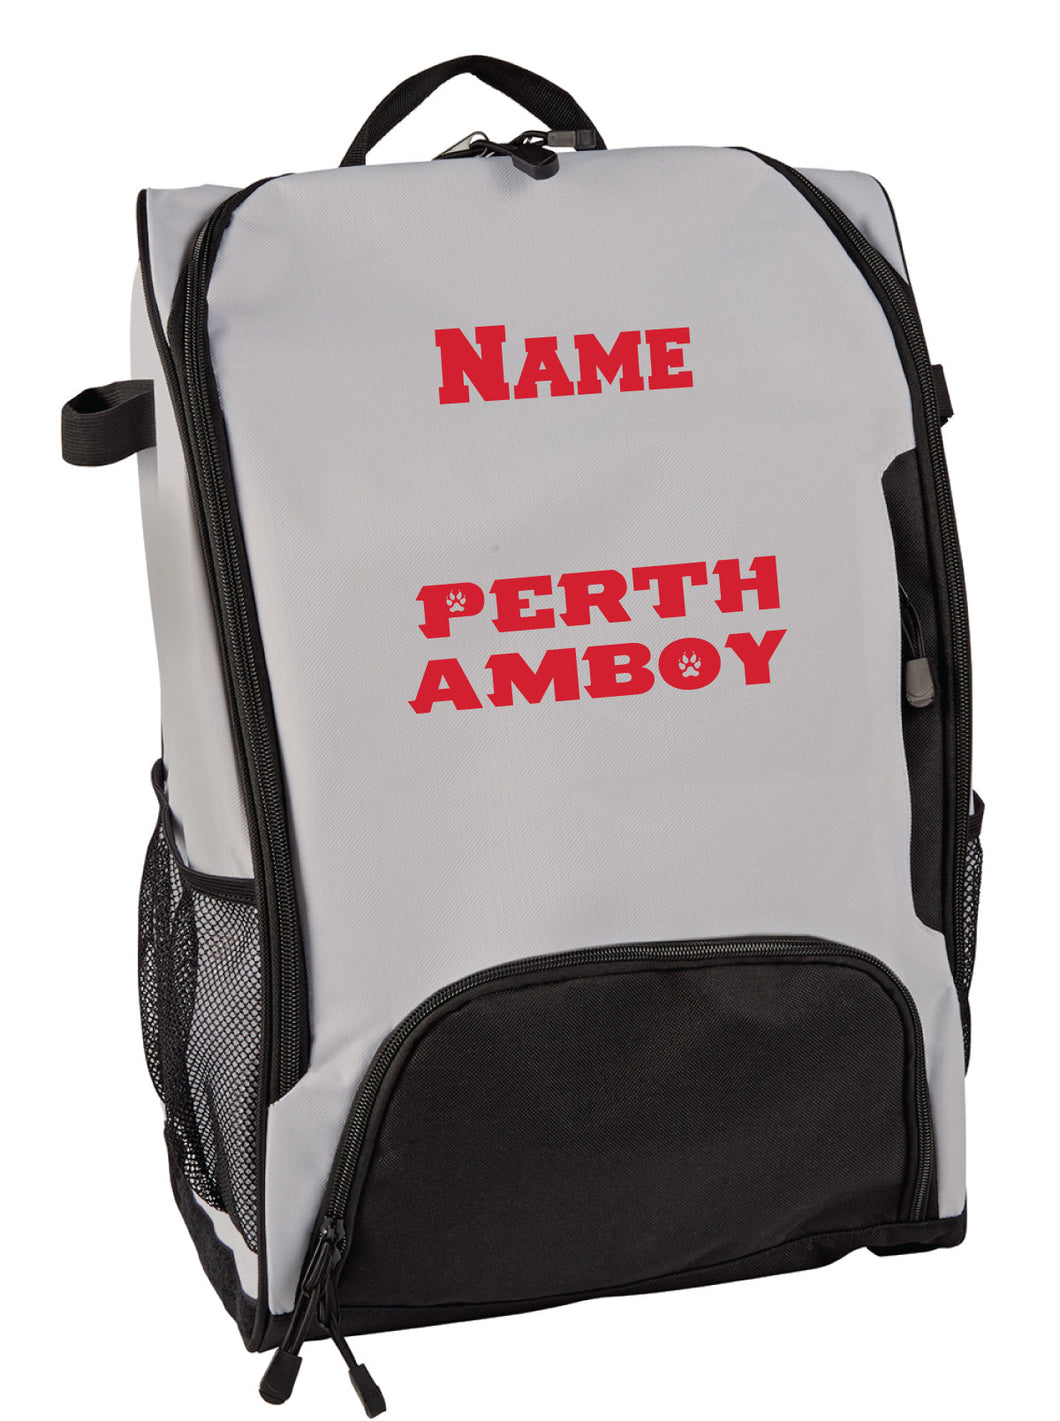 Perth Amboy Wrestling Backpack - 5KounT